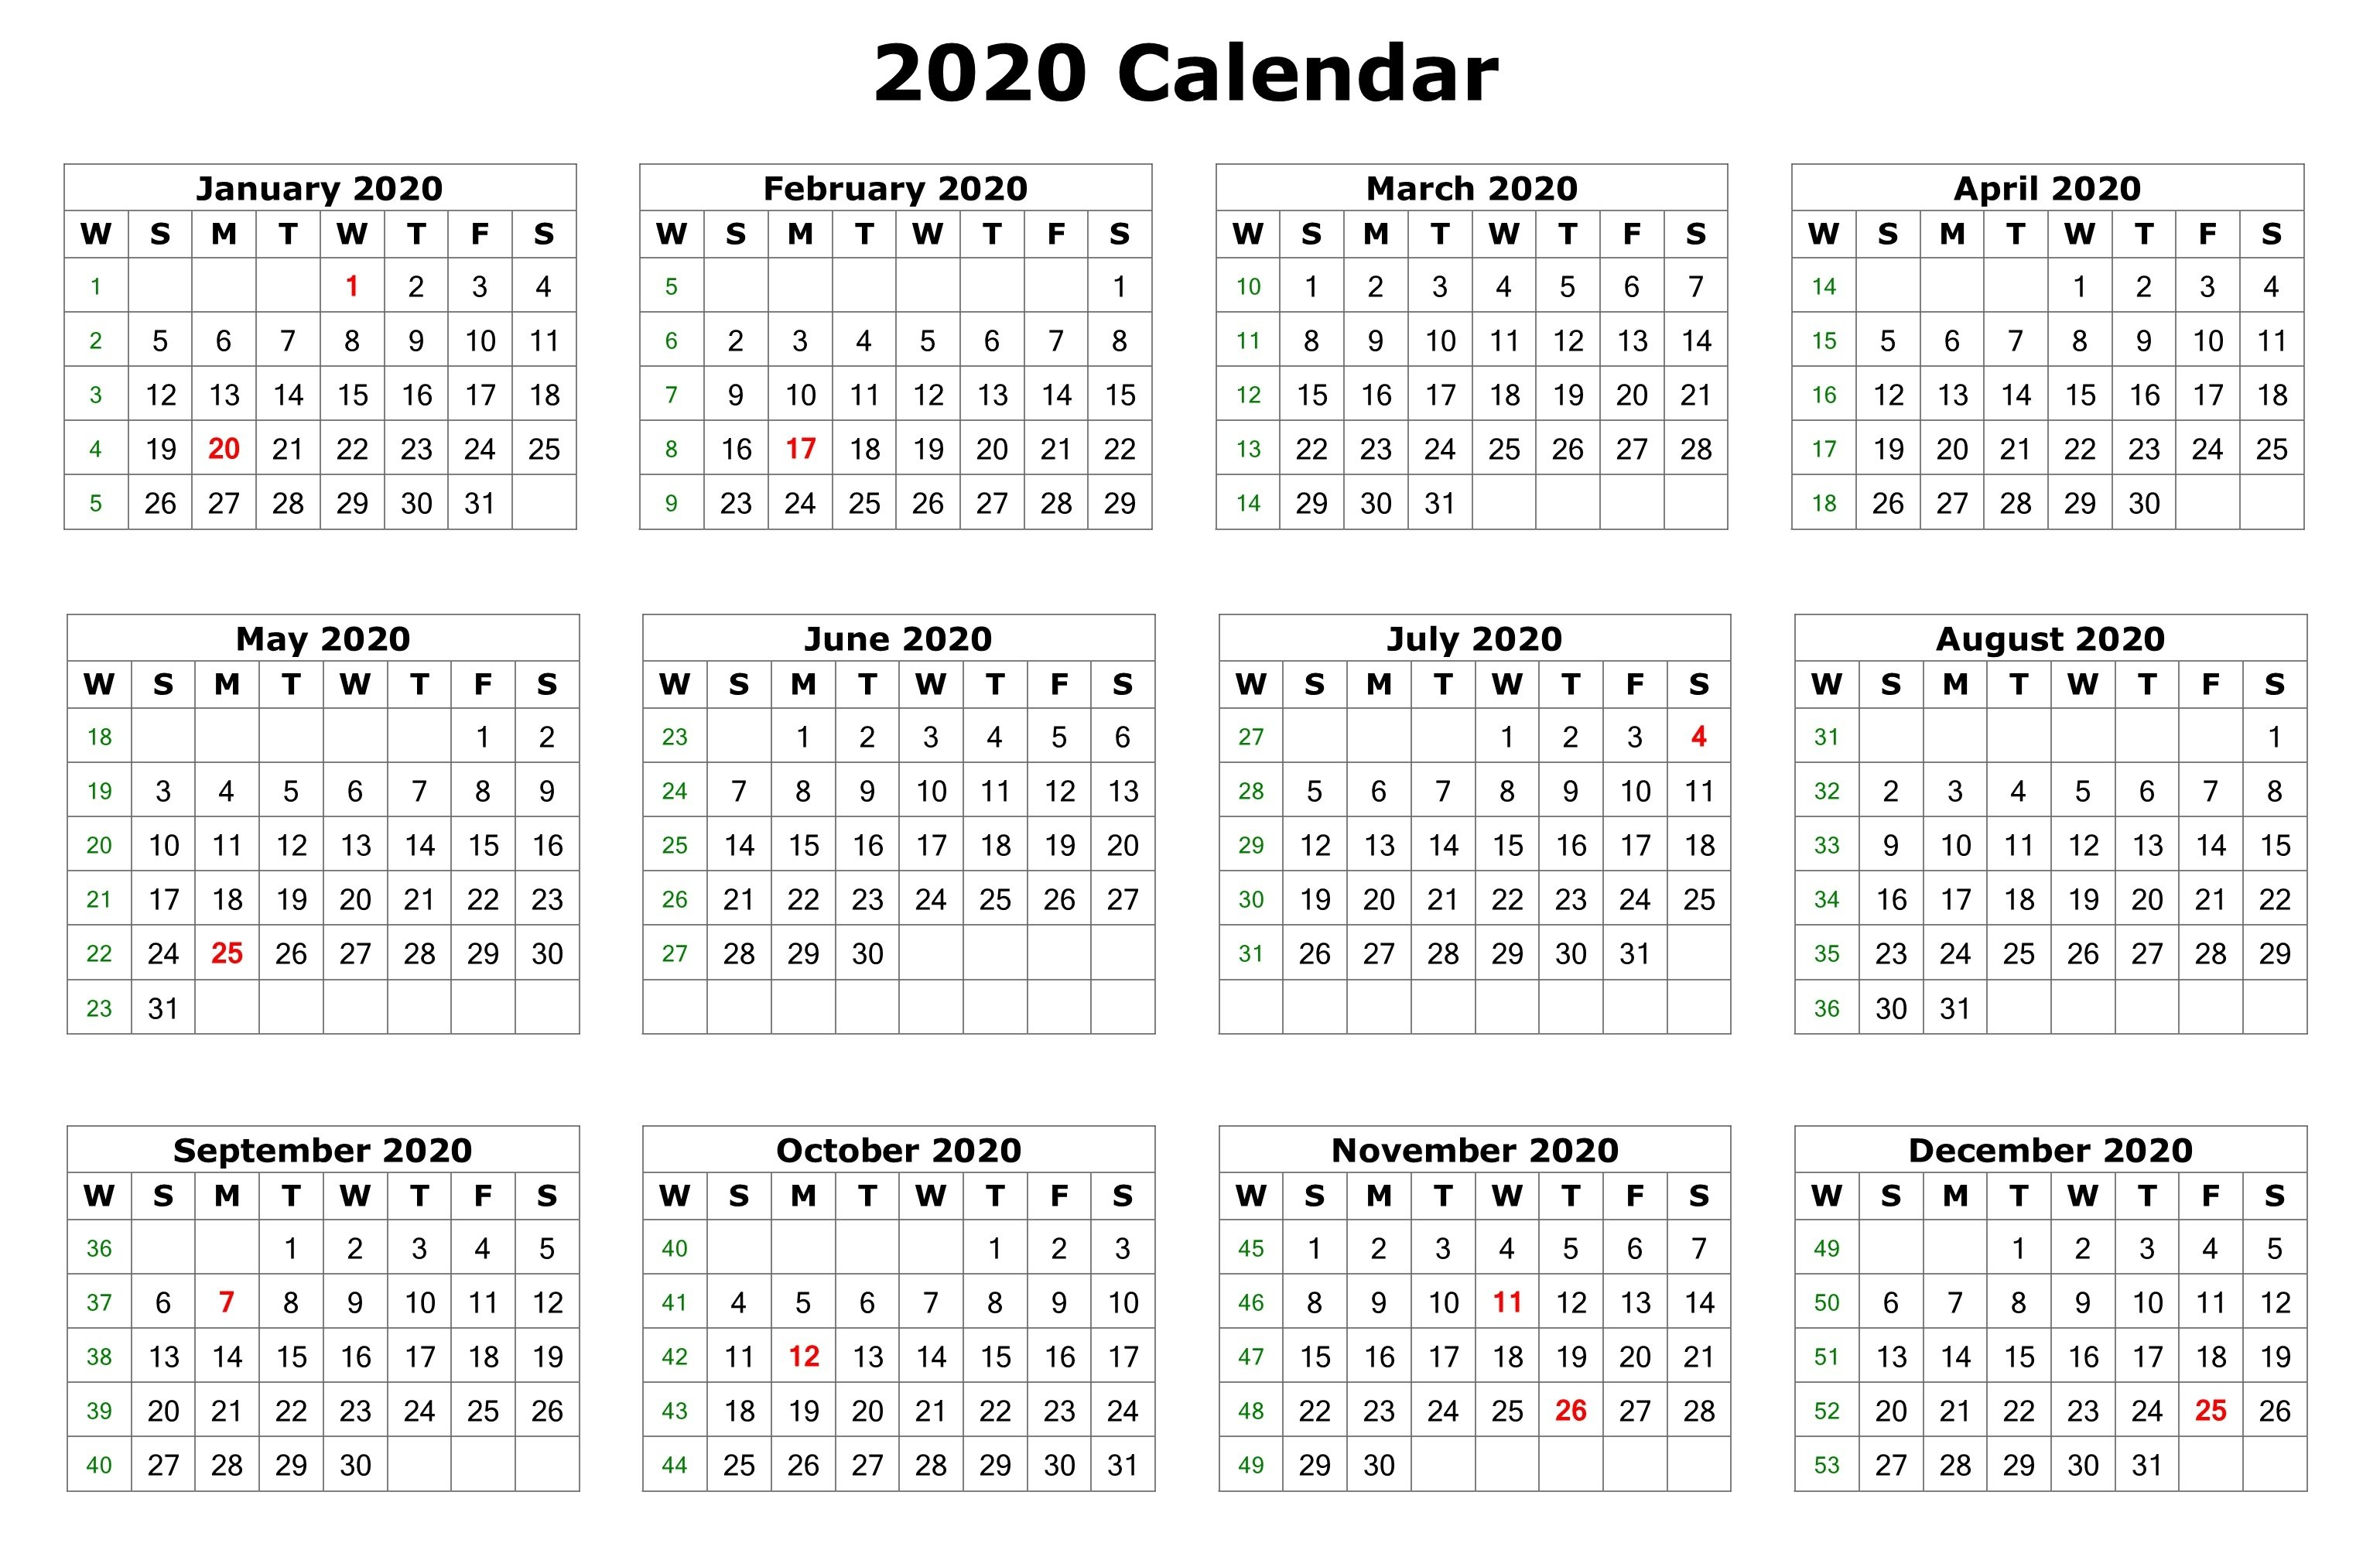 2020 One Page Calendar Printable | Calendar 2020 inside Printable 12 Month Calendar On One Page